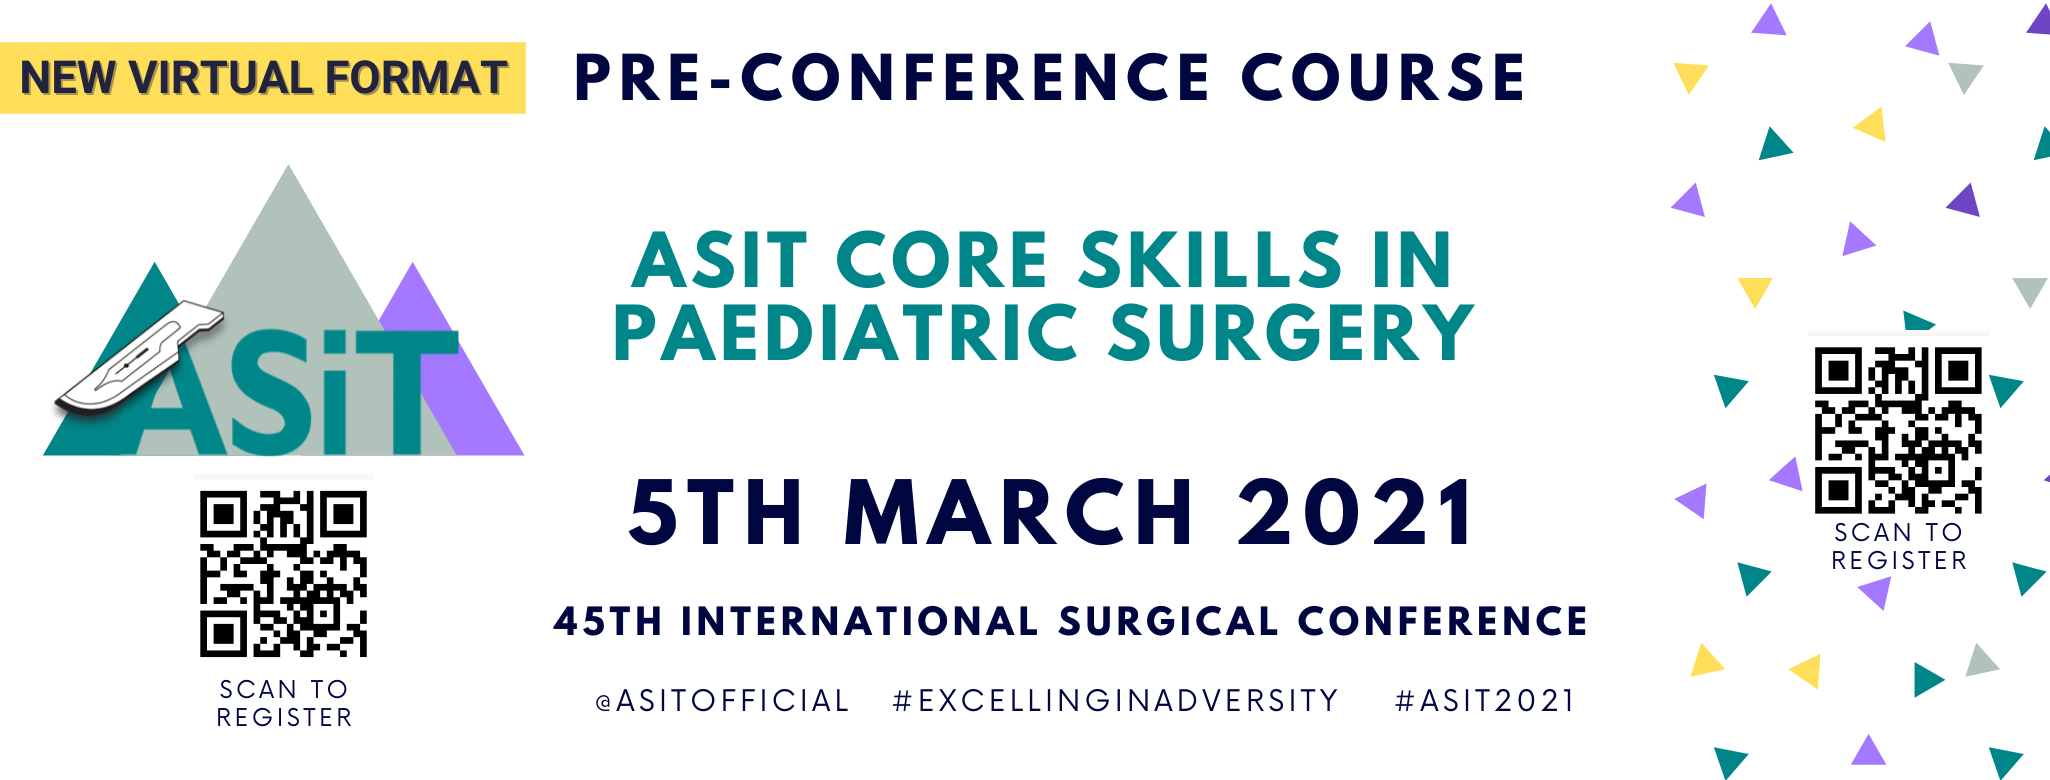 ASiT Core Skills in Paediatric Surgery: Pre-Conference Course